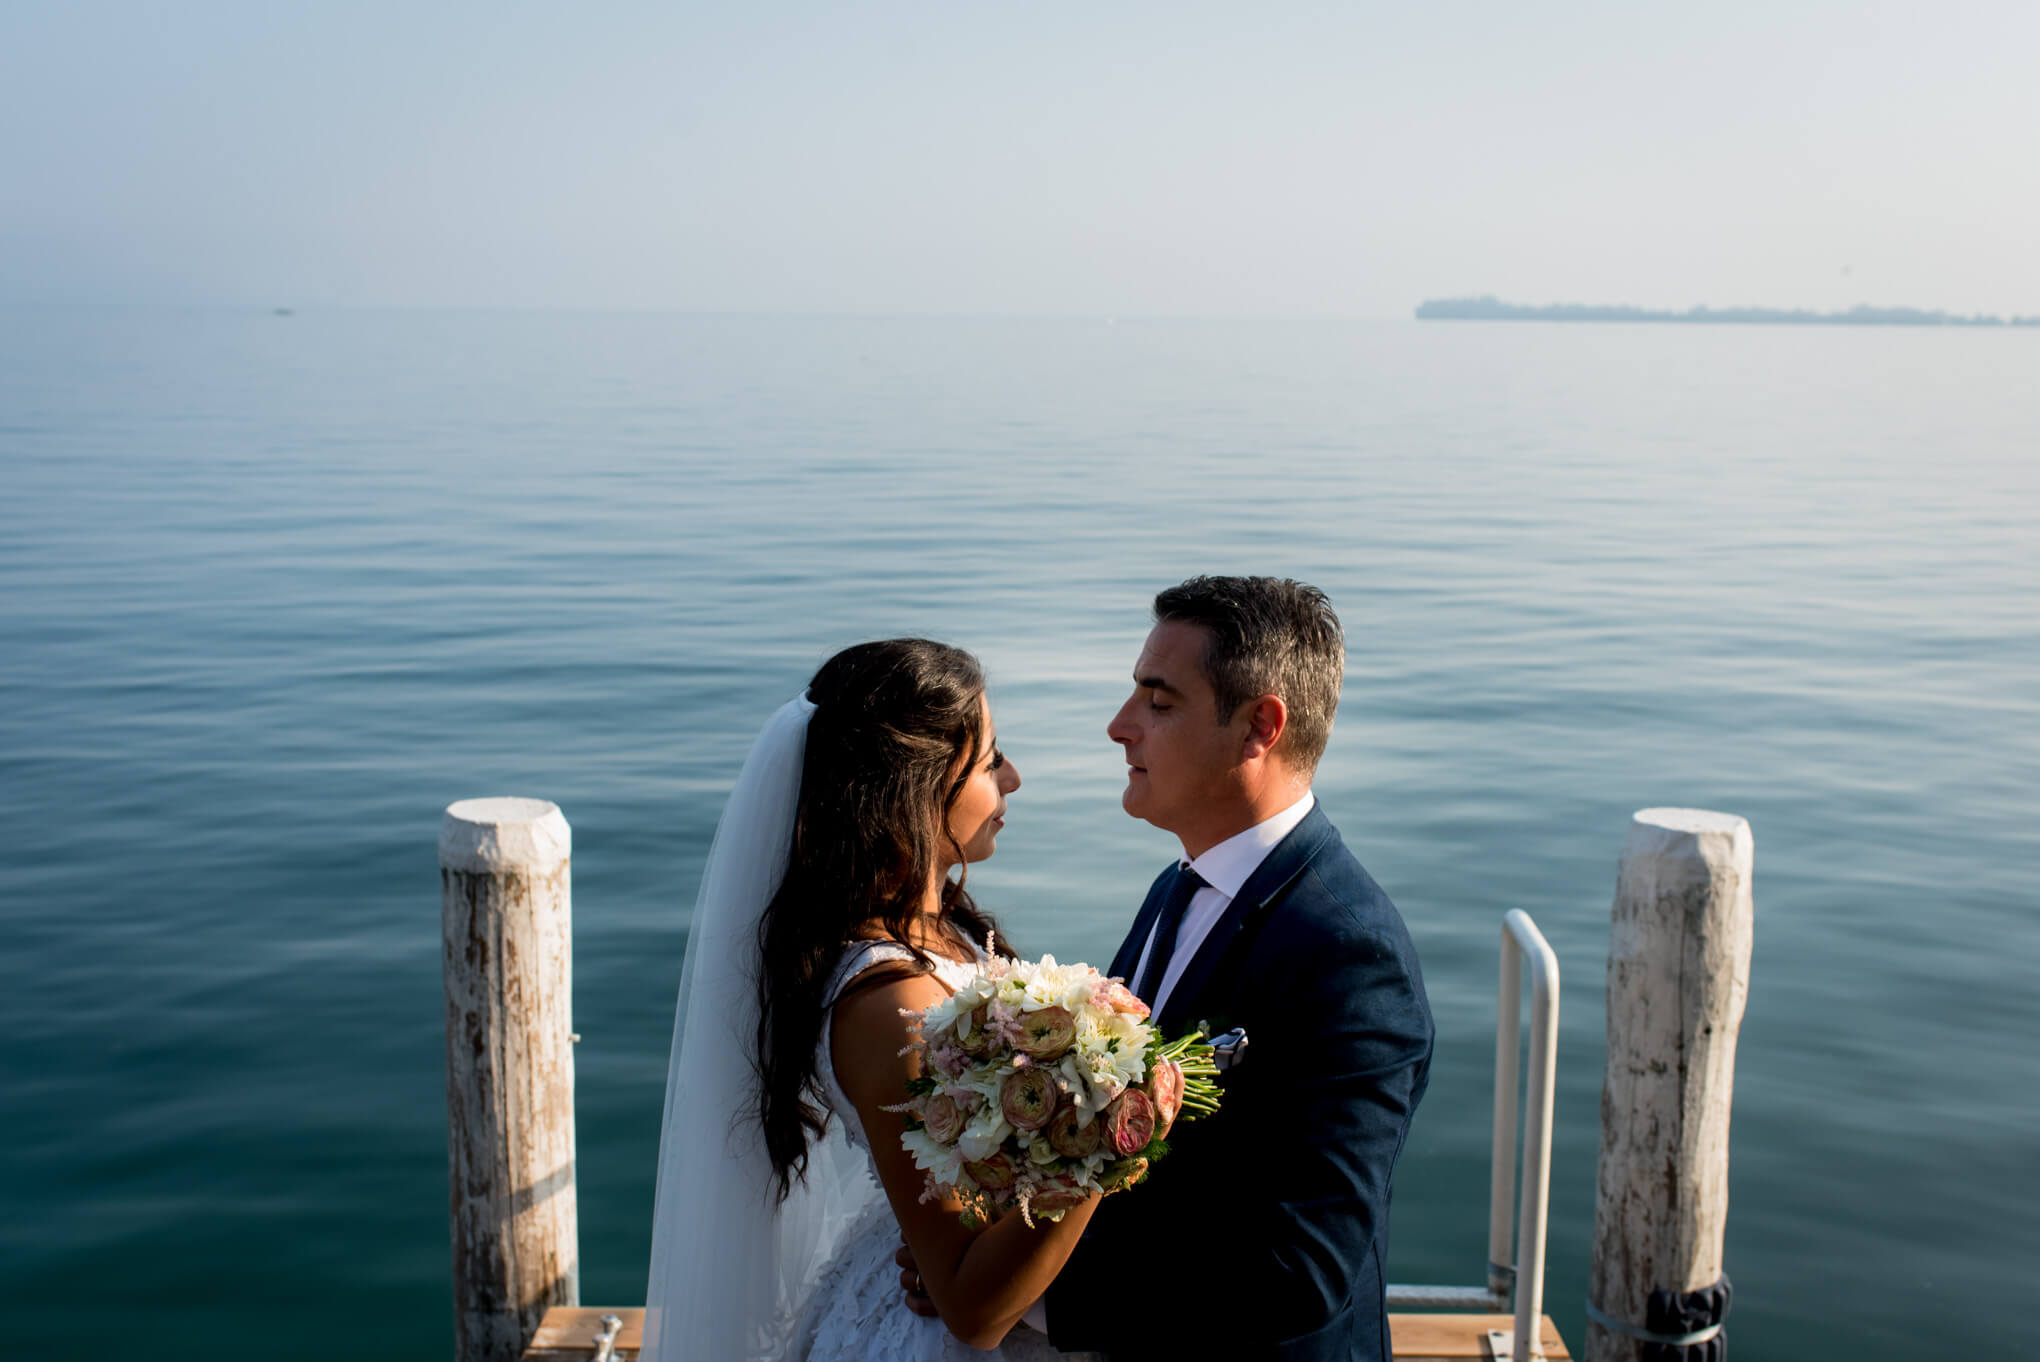 destination wedding photographer, Destination Wedding Photography, international wedding photographer, italian wedding, Italian wedding photographer, lake garda photography, lake garda photos, lake garda wedding, multicultural wedding, multicultural wedding photographer, wedding photographer lake garda